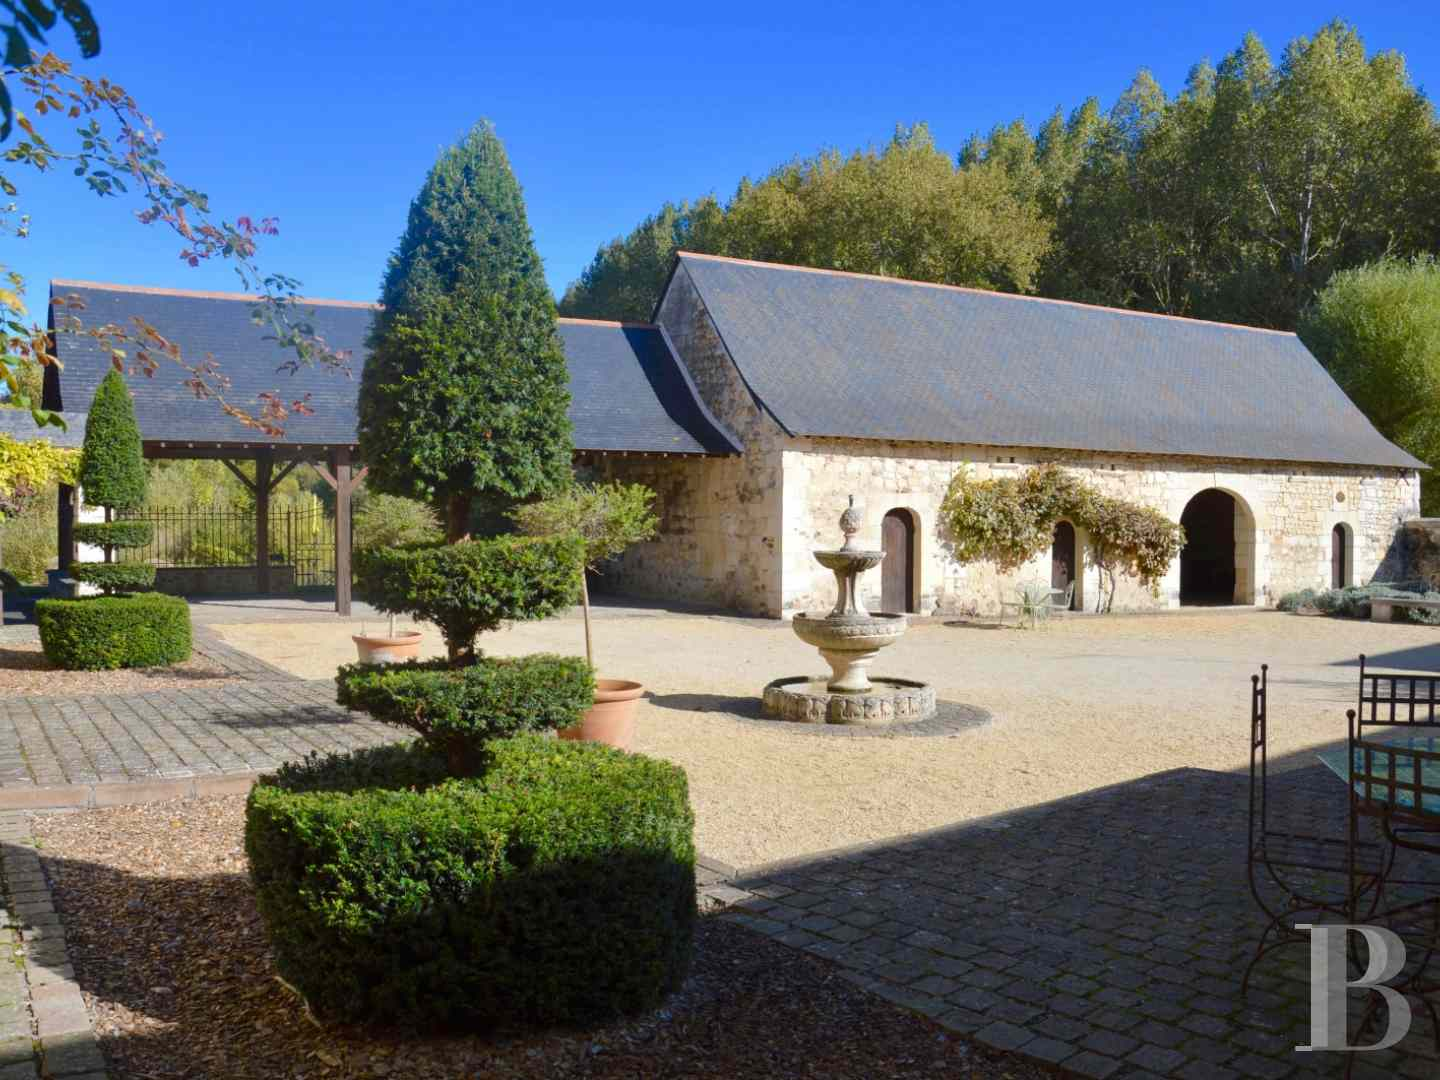 France mansions for sale pays de loire manor house - 5 zoom